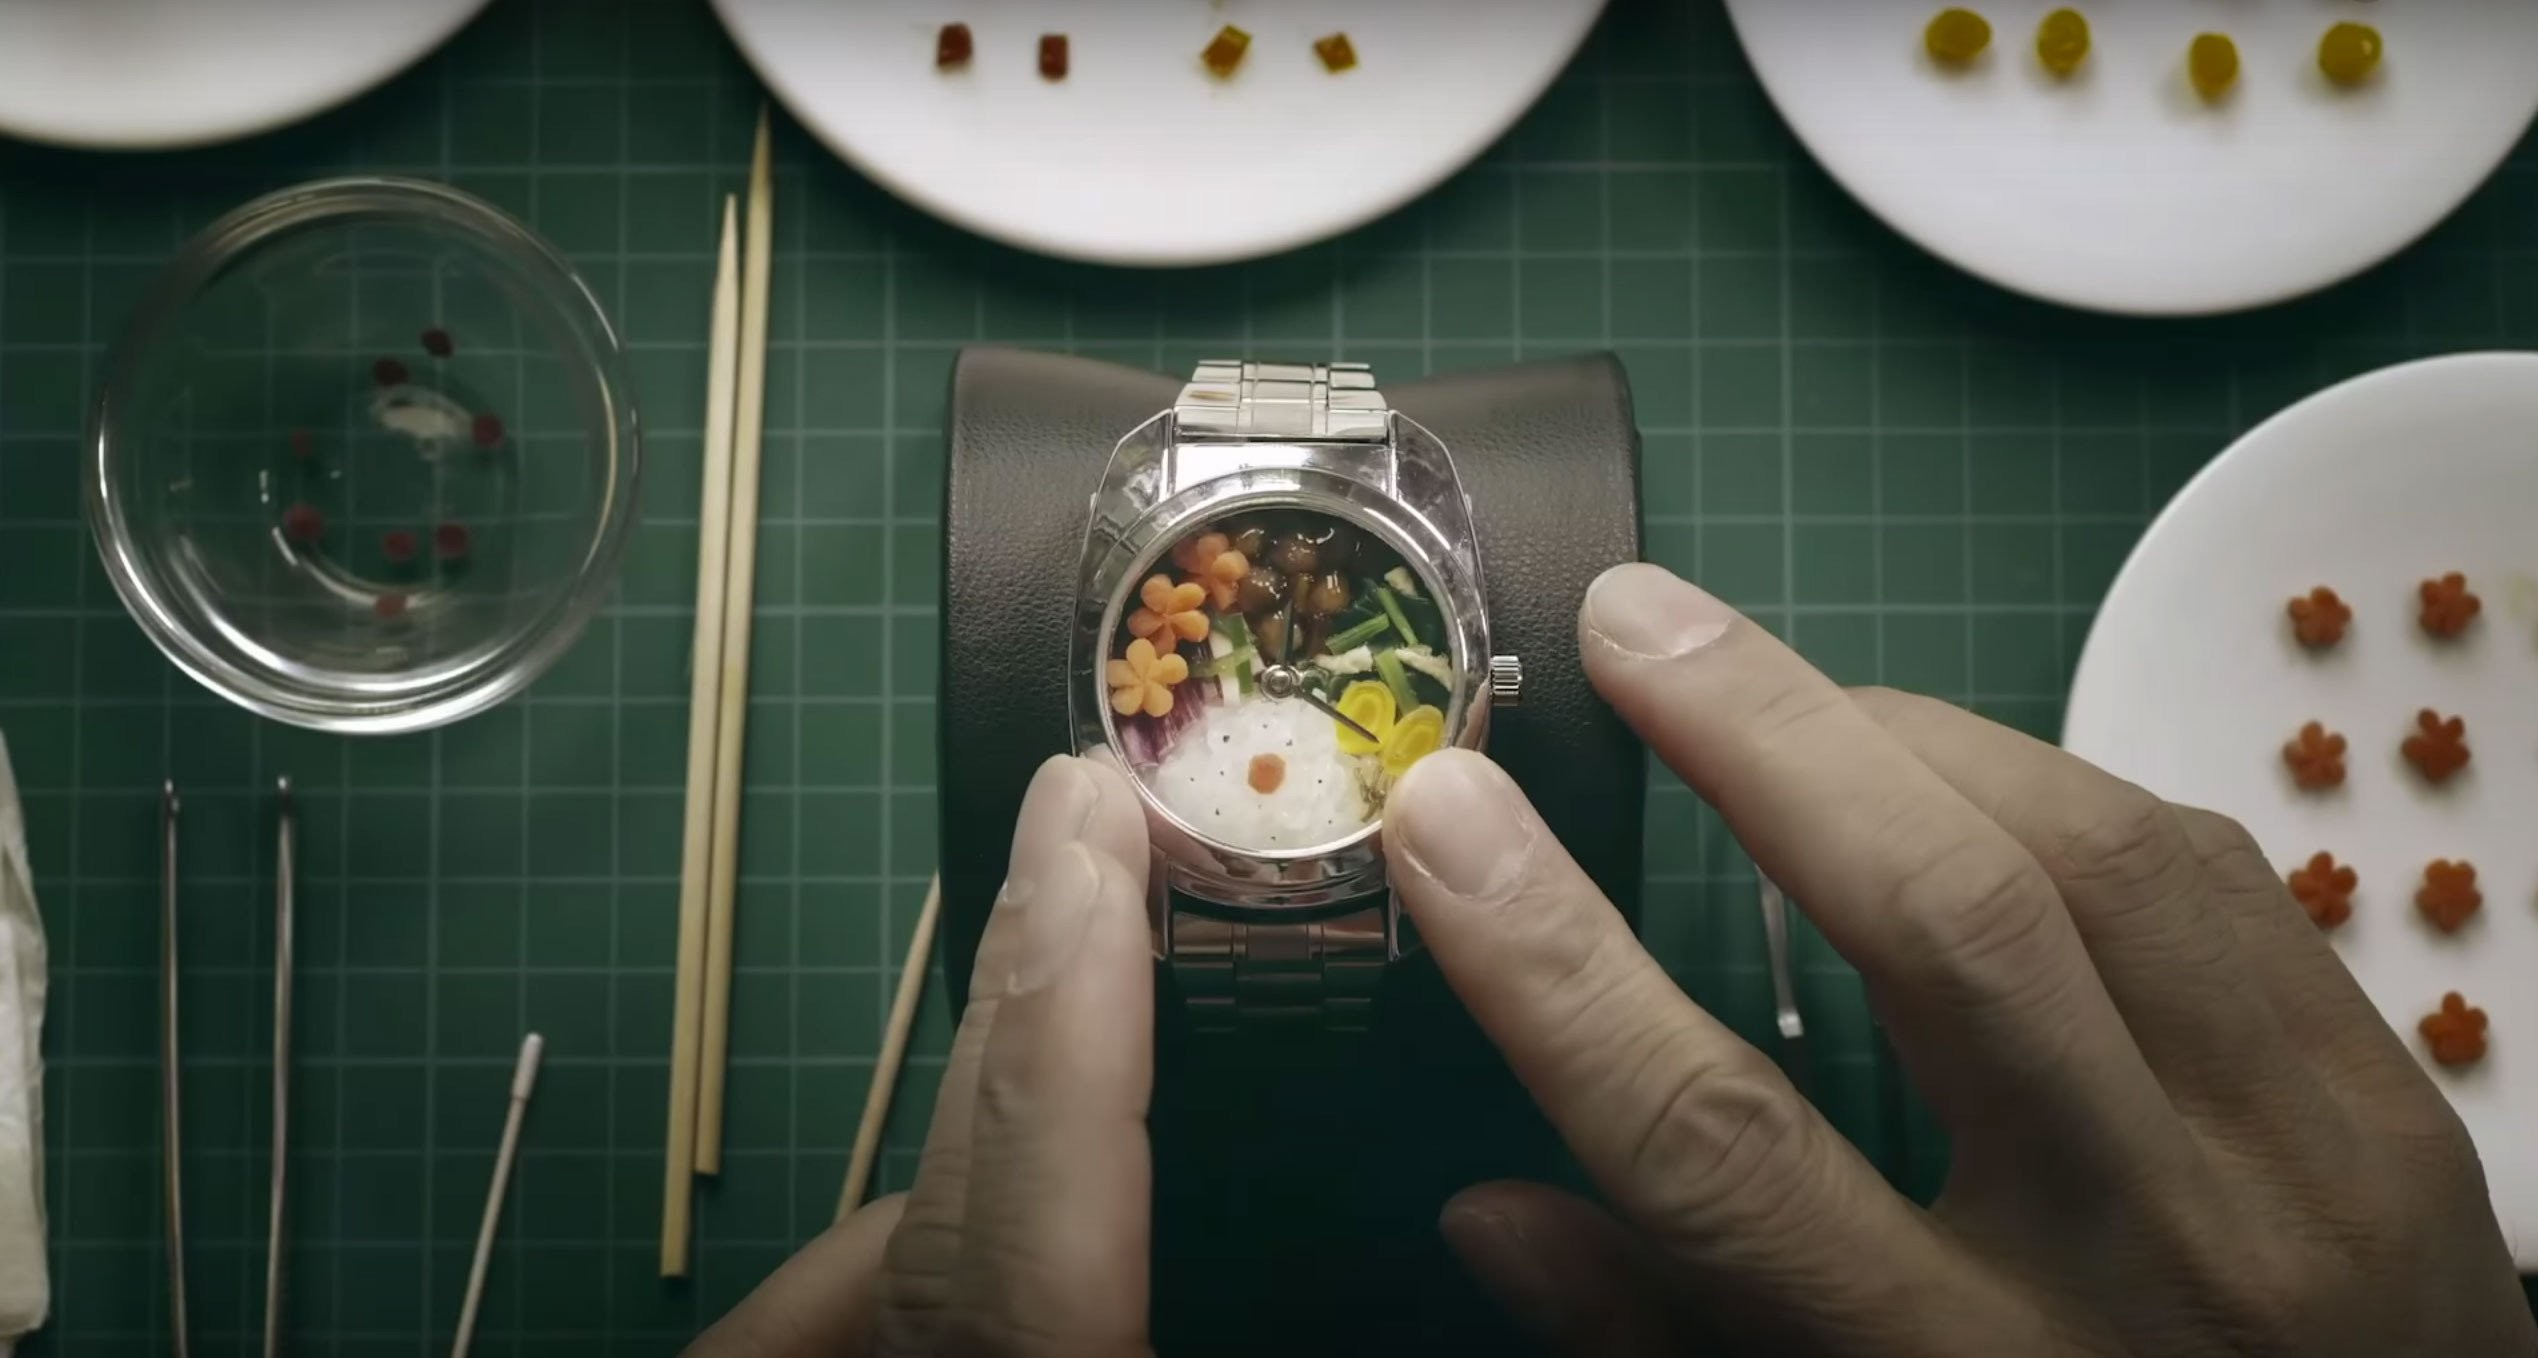 Bento, Watch, Eating, Food, Pebble, Meal, Lunch, Smartwatch, Lunchbox, Breakfast, 手錶 便當, finger, hand, nail